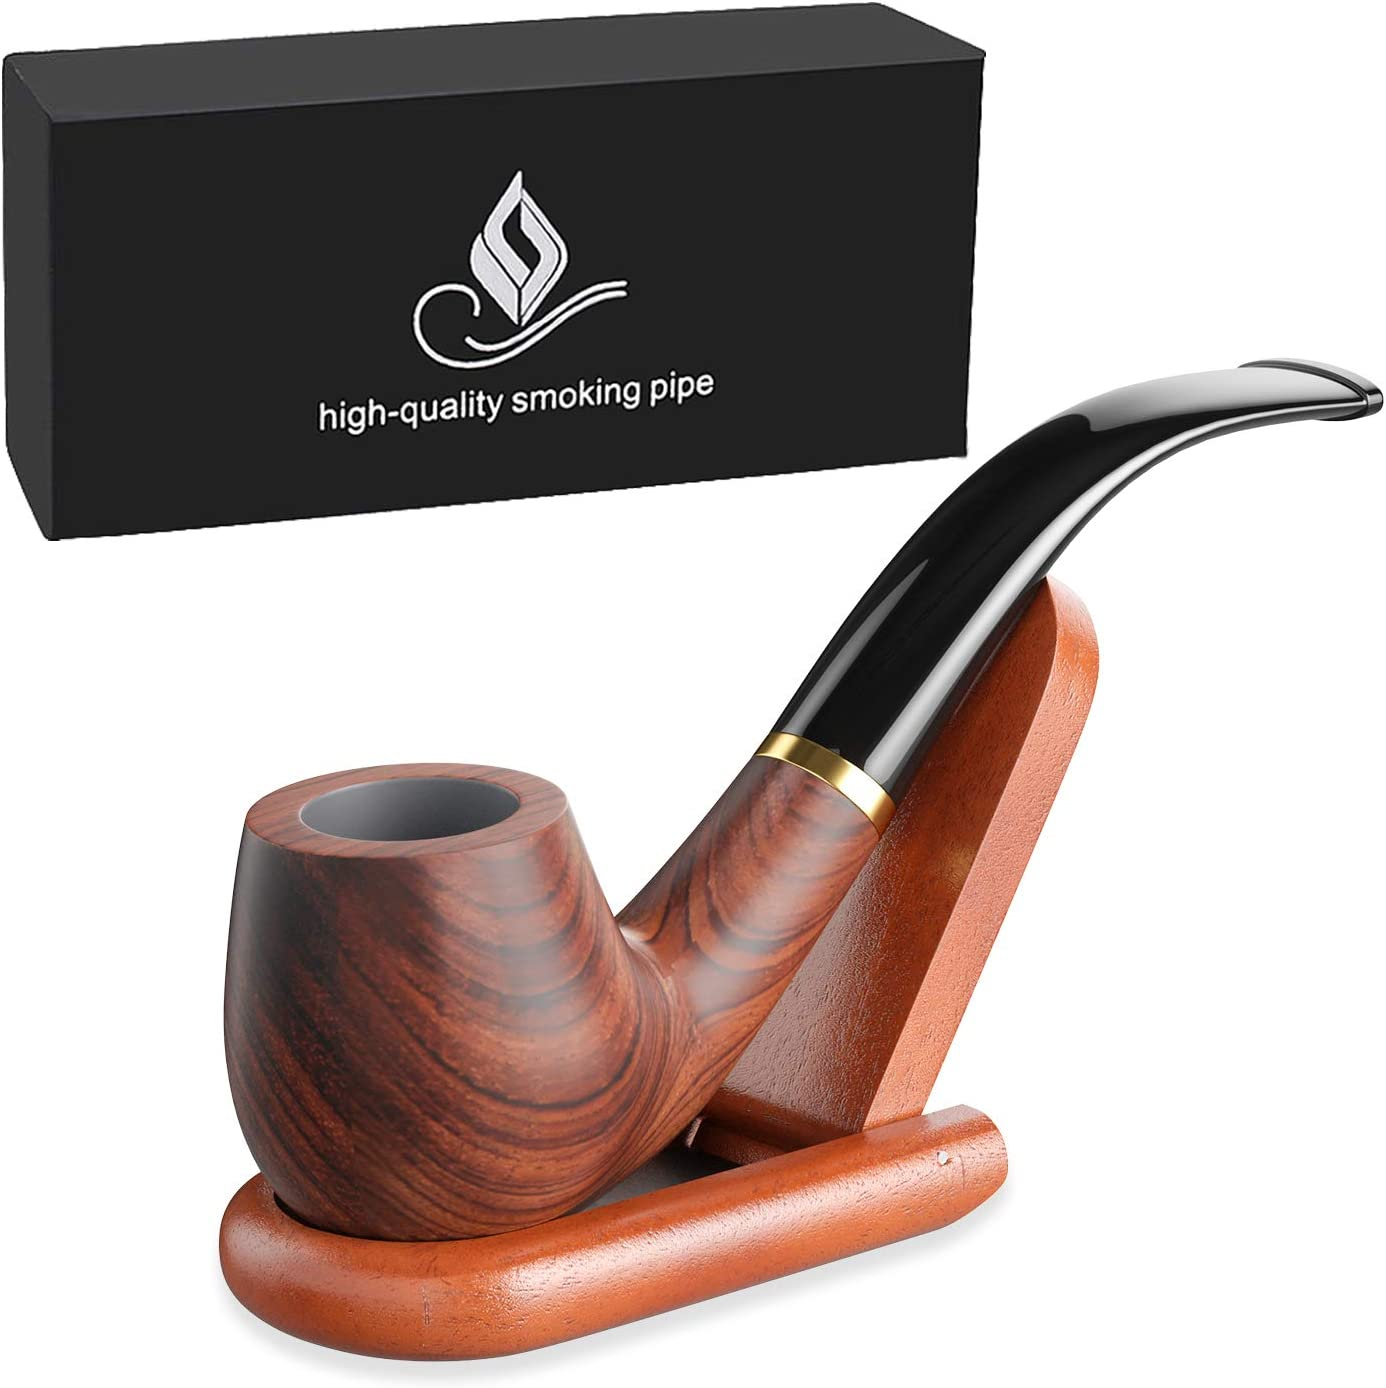 Joyoldelf Tobacco Pipe Rosewood Standard Fort Worth Mall High with Smoking Inexpensive